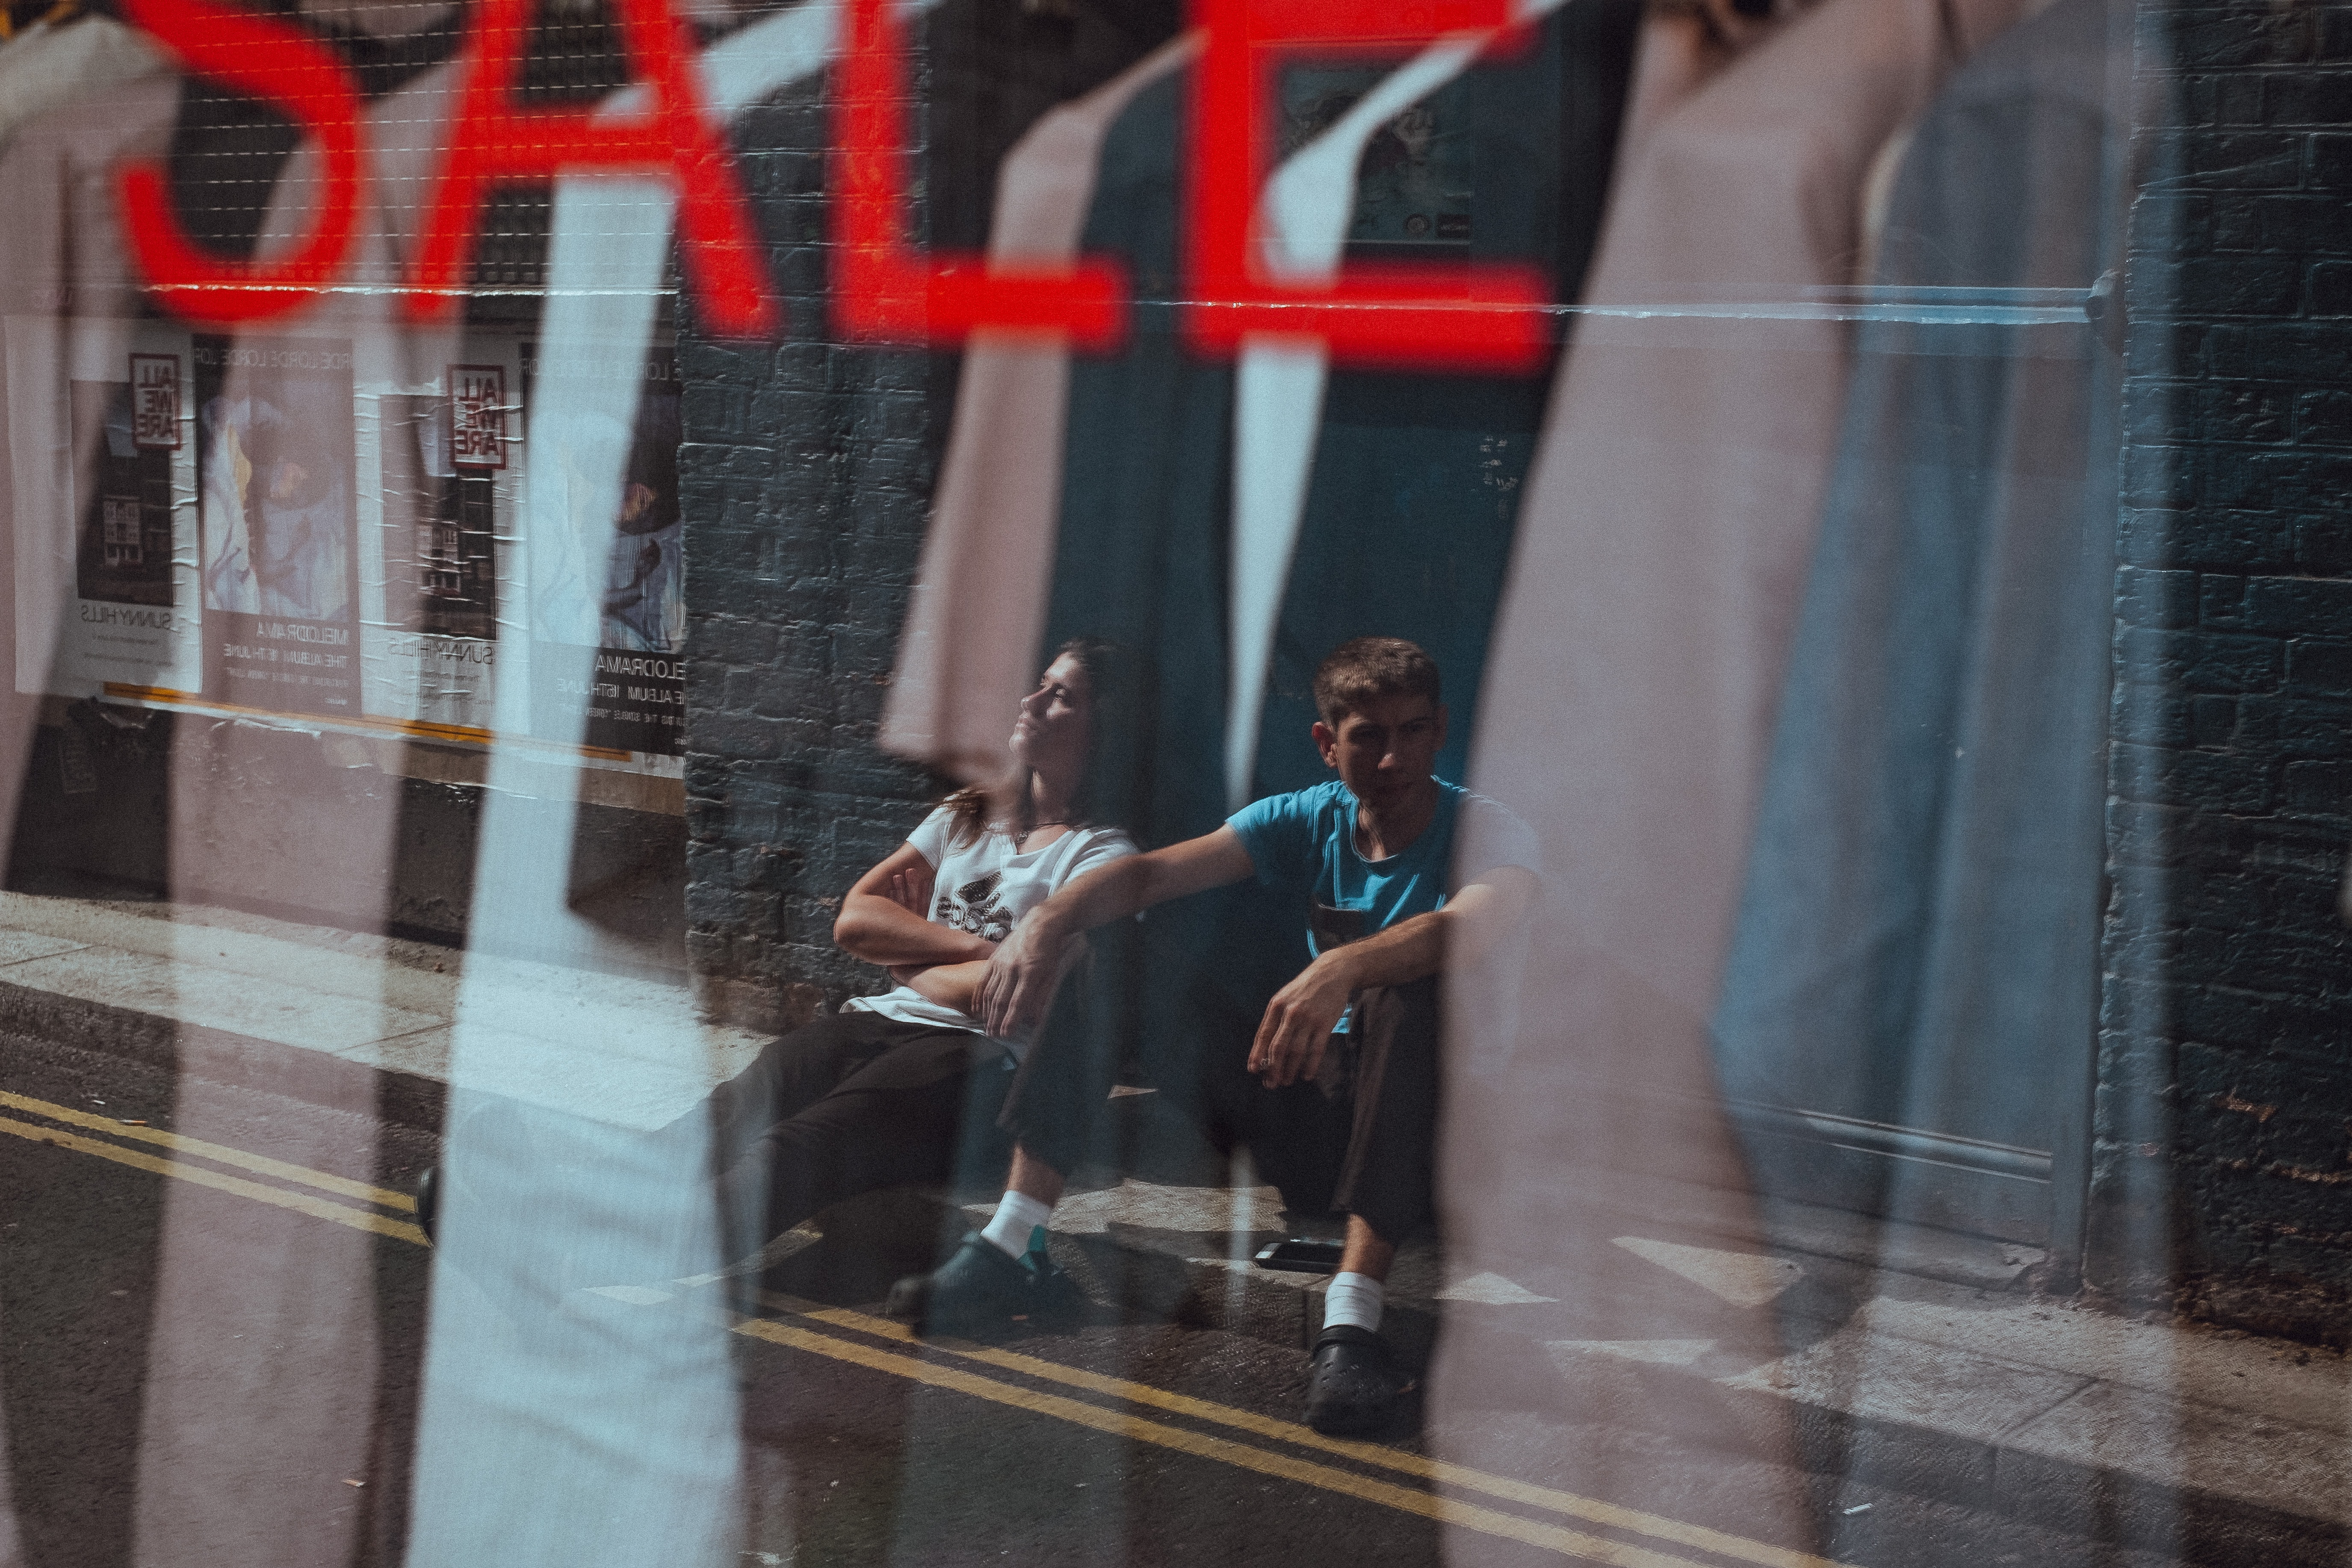 A man and woman sitting against a wall, reflected in a shop window